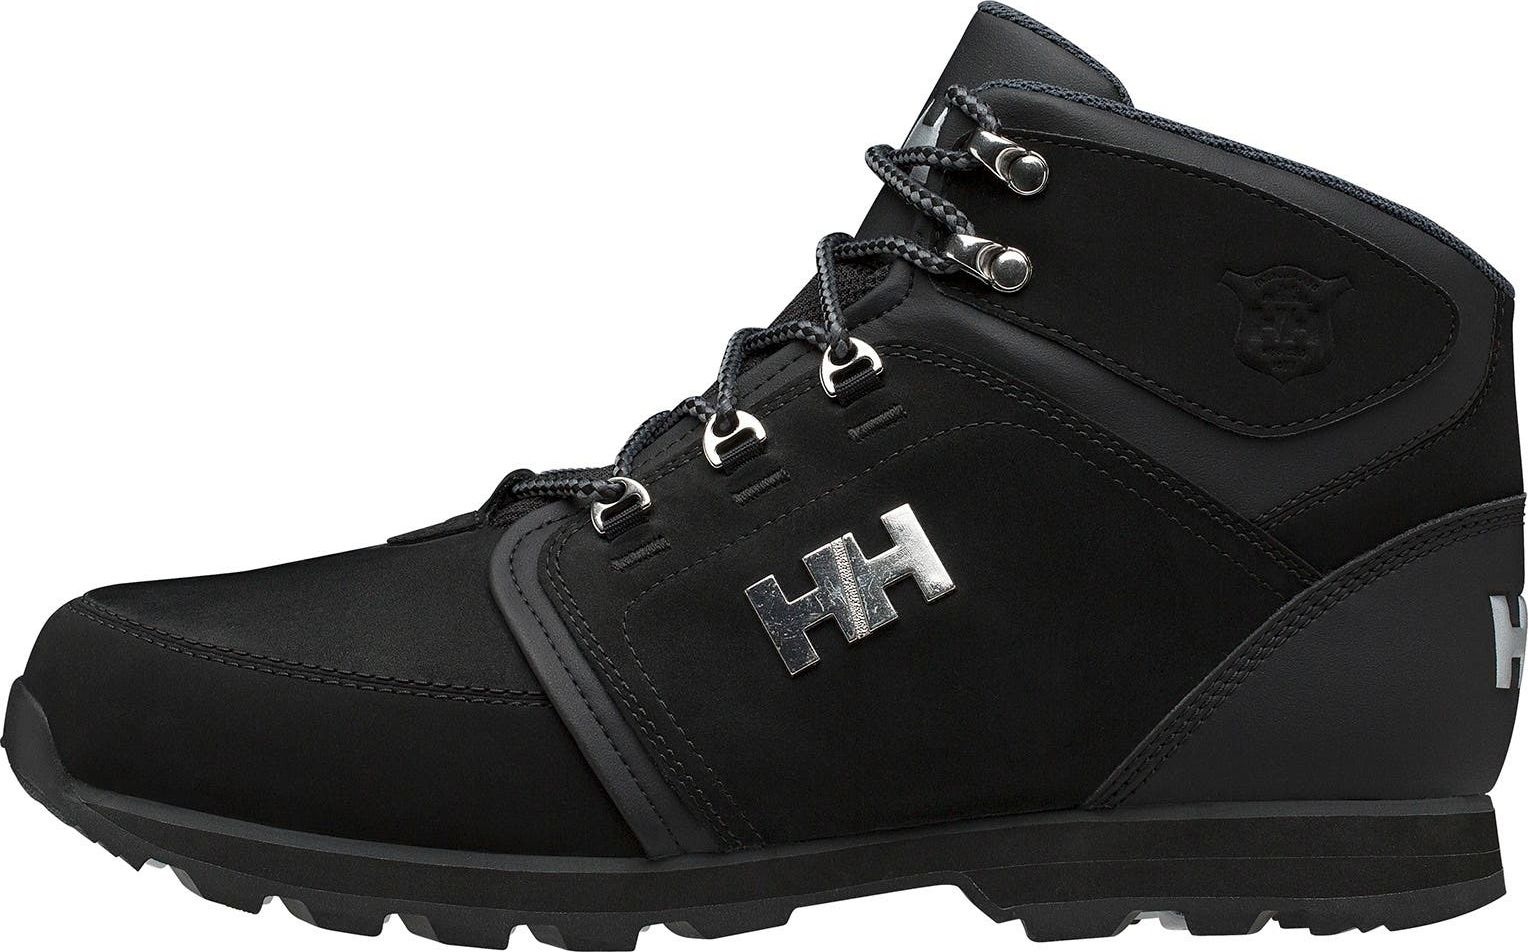 HELLY HANSEN Koppervik Black/Ebony/Grey Fog 45